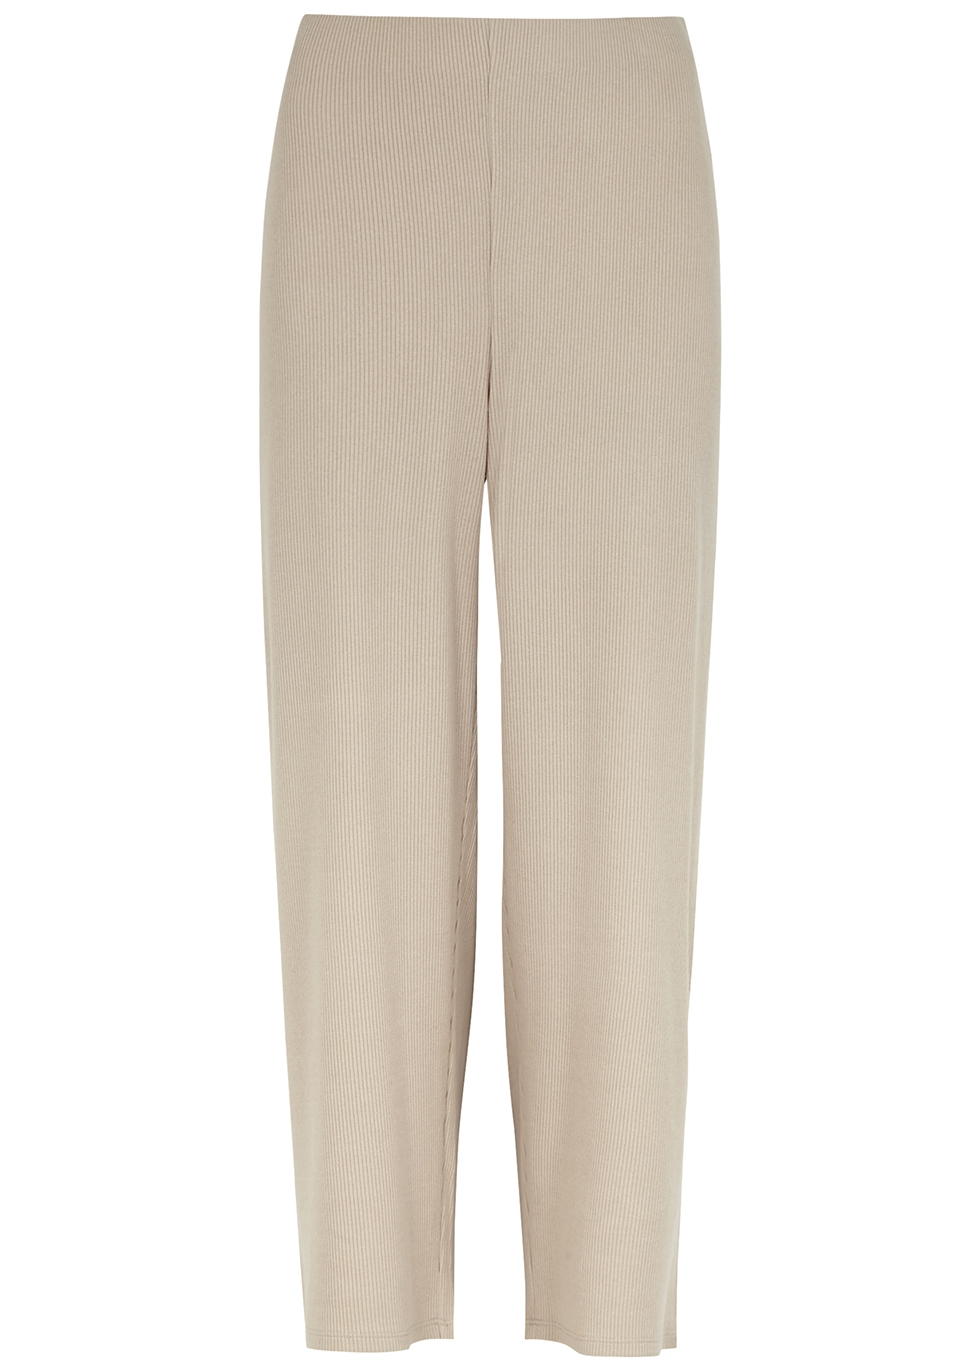 Stone ribbed jersey trousers